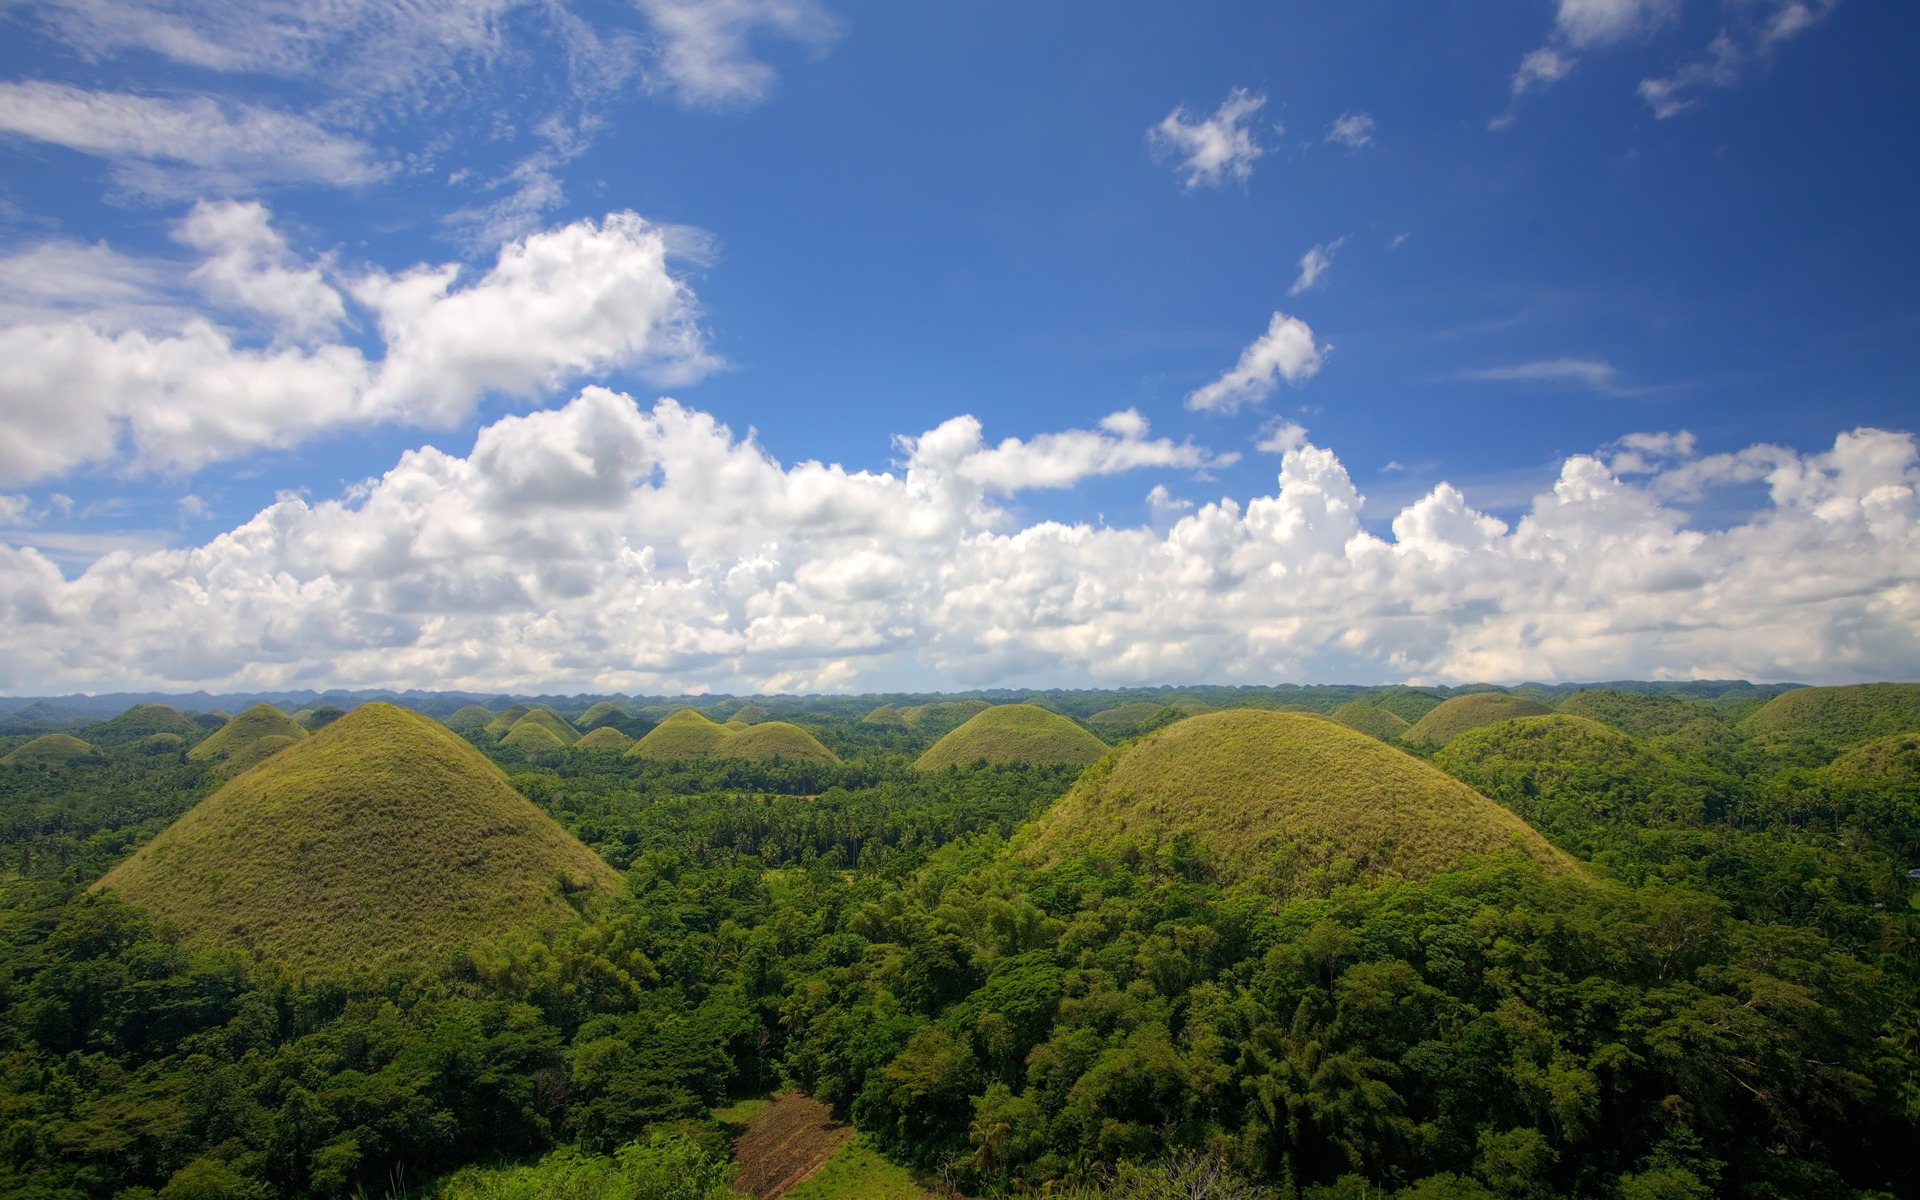 -downloadfiles-wallpapers-1920_1200-chocolate_hills_wallpaper_philippines_world_1714